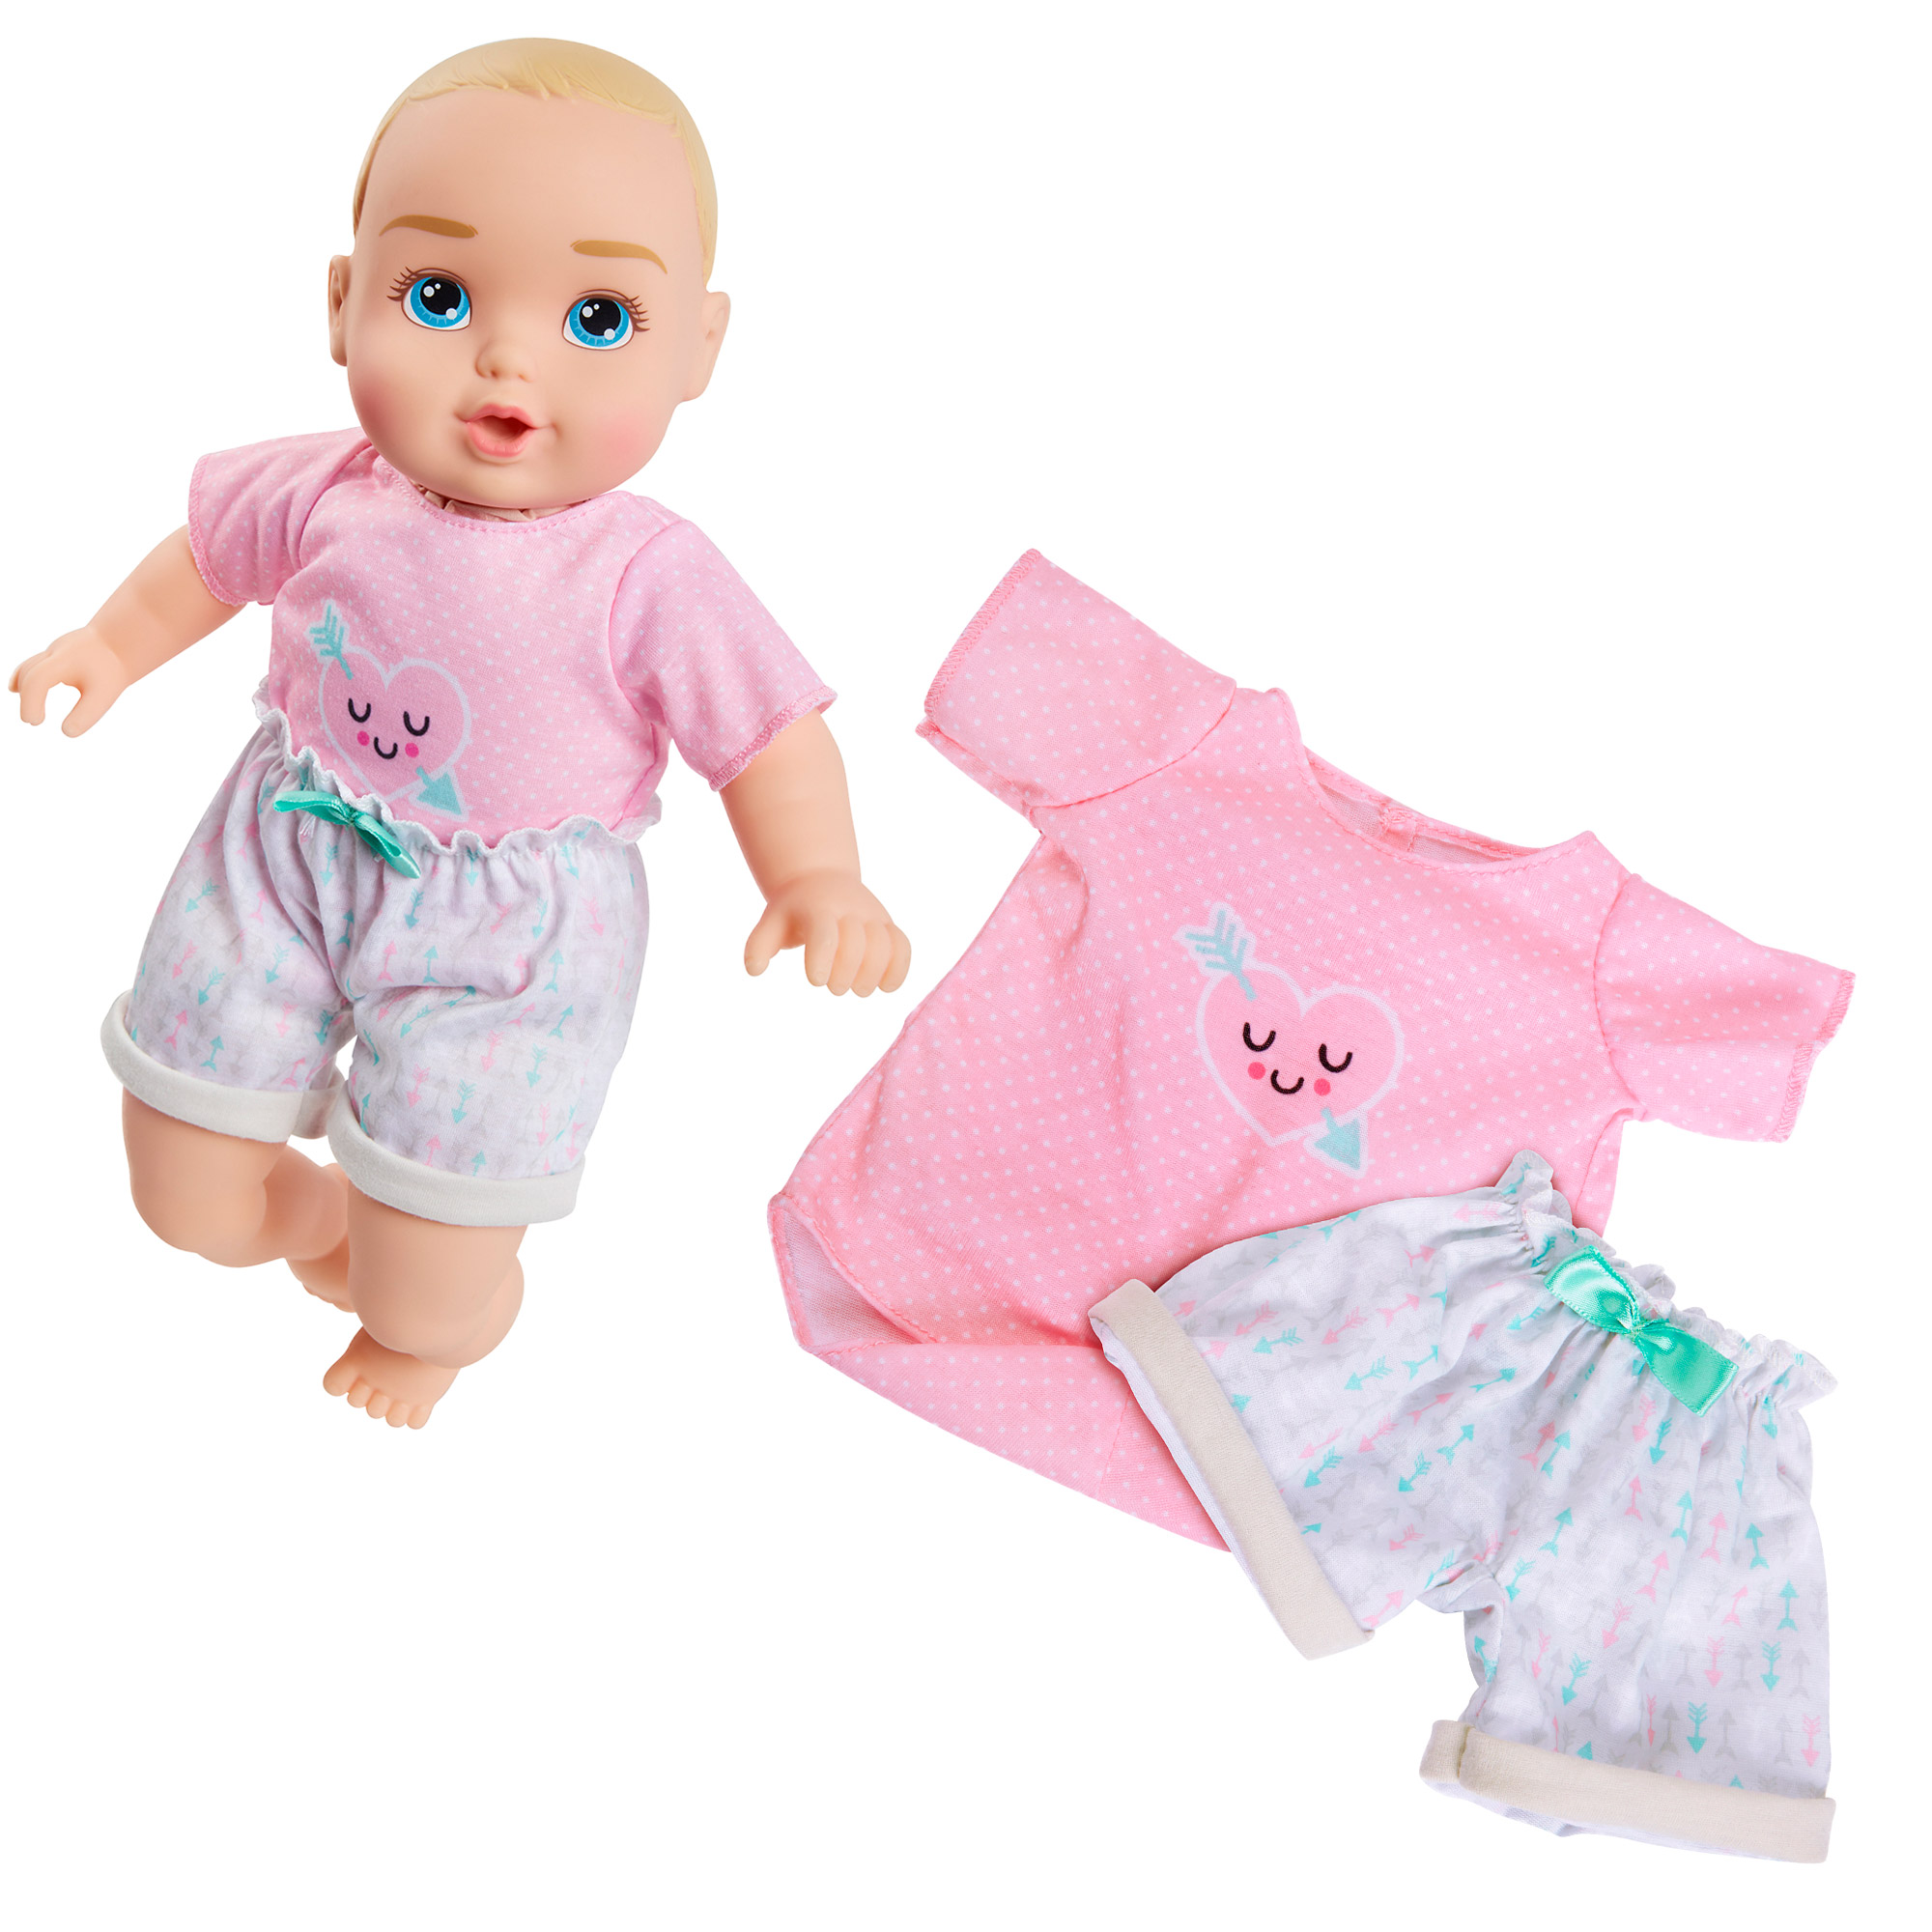 Perfectly Cute Baby 2 Piece Shirt & Shorts